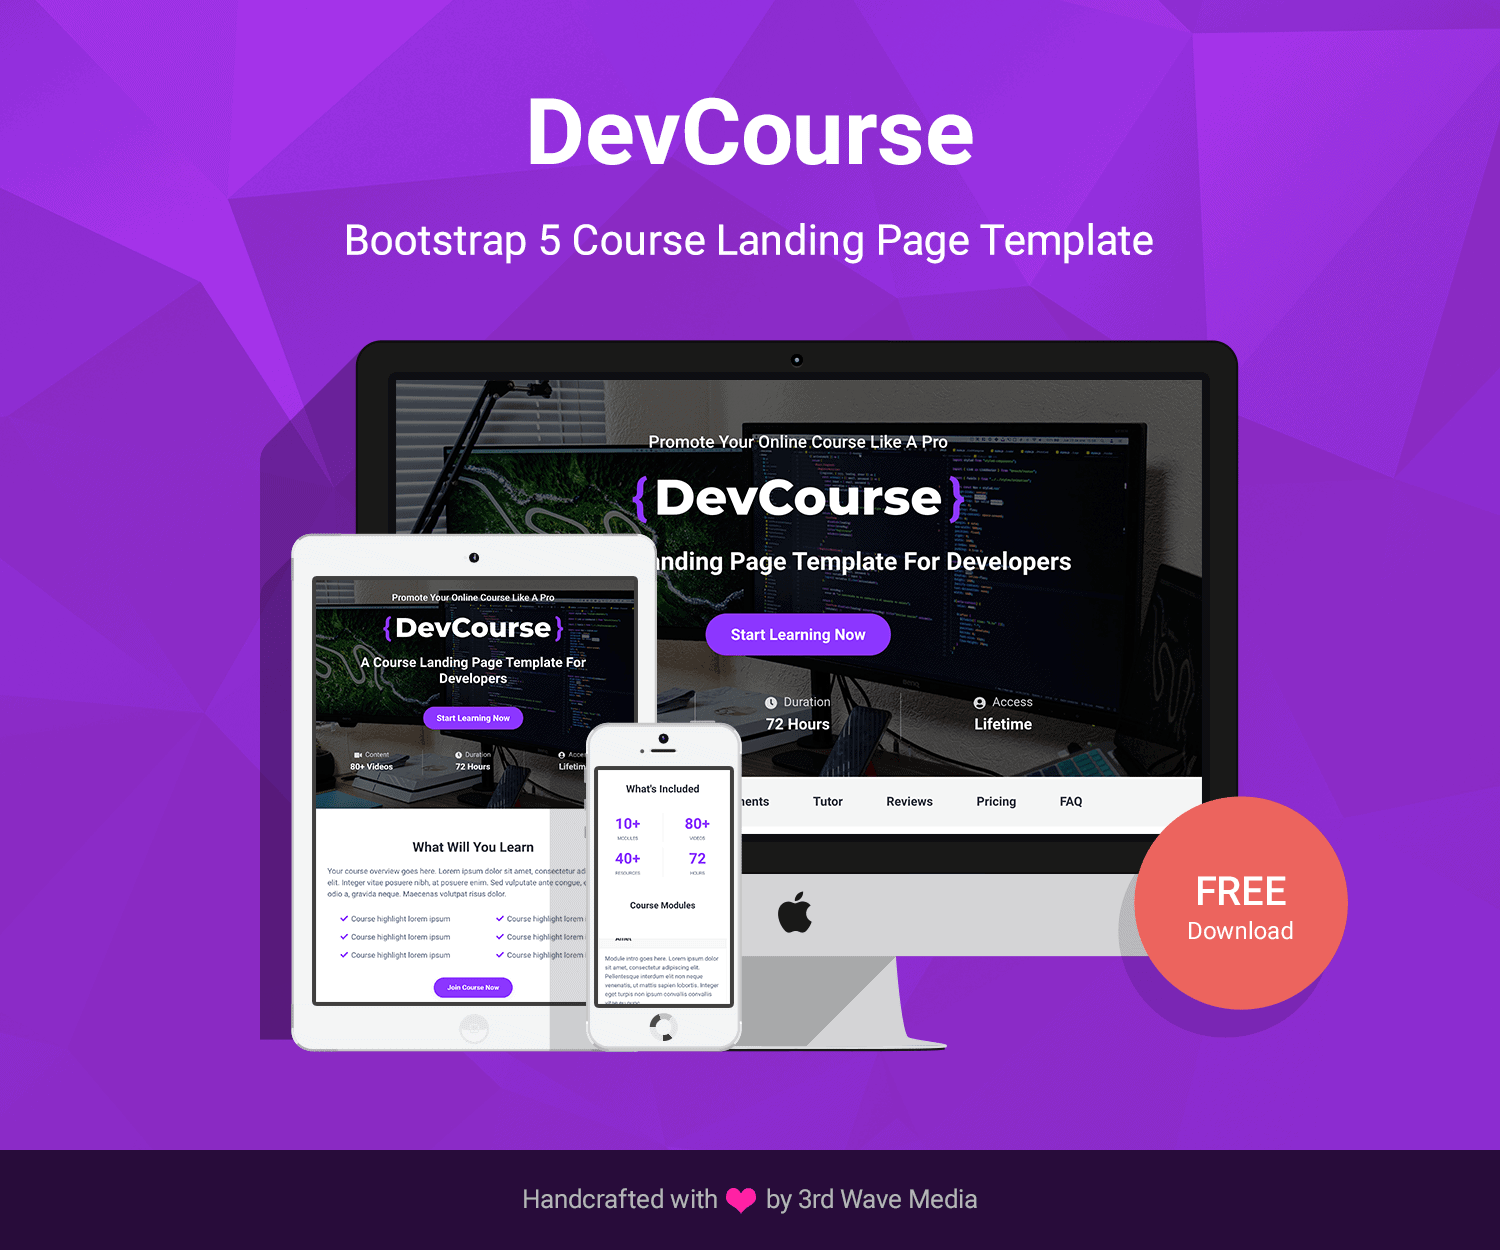 DevCourse - Free Bootstrap Course Landing Page Template